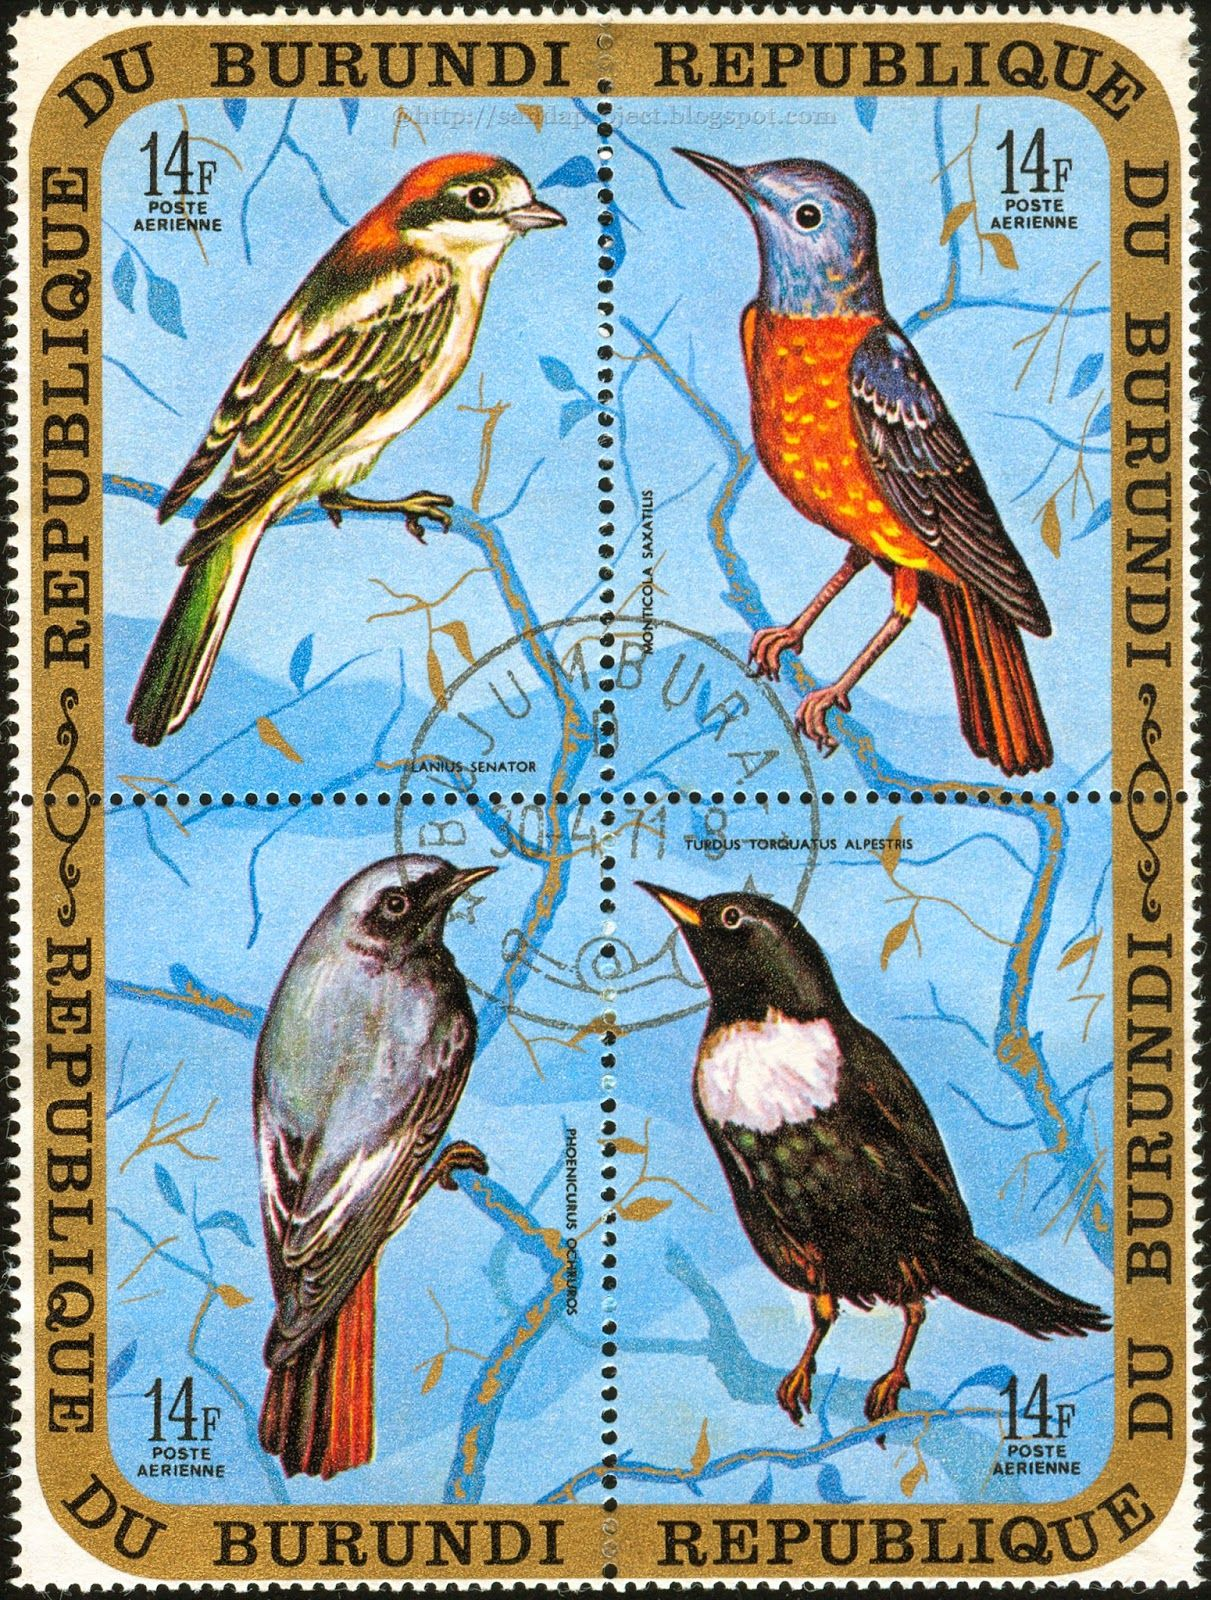 Postage stamps and postcards